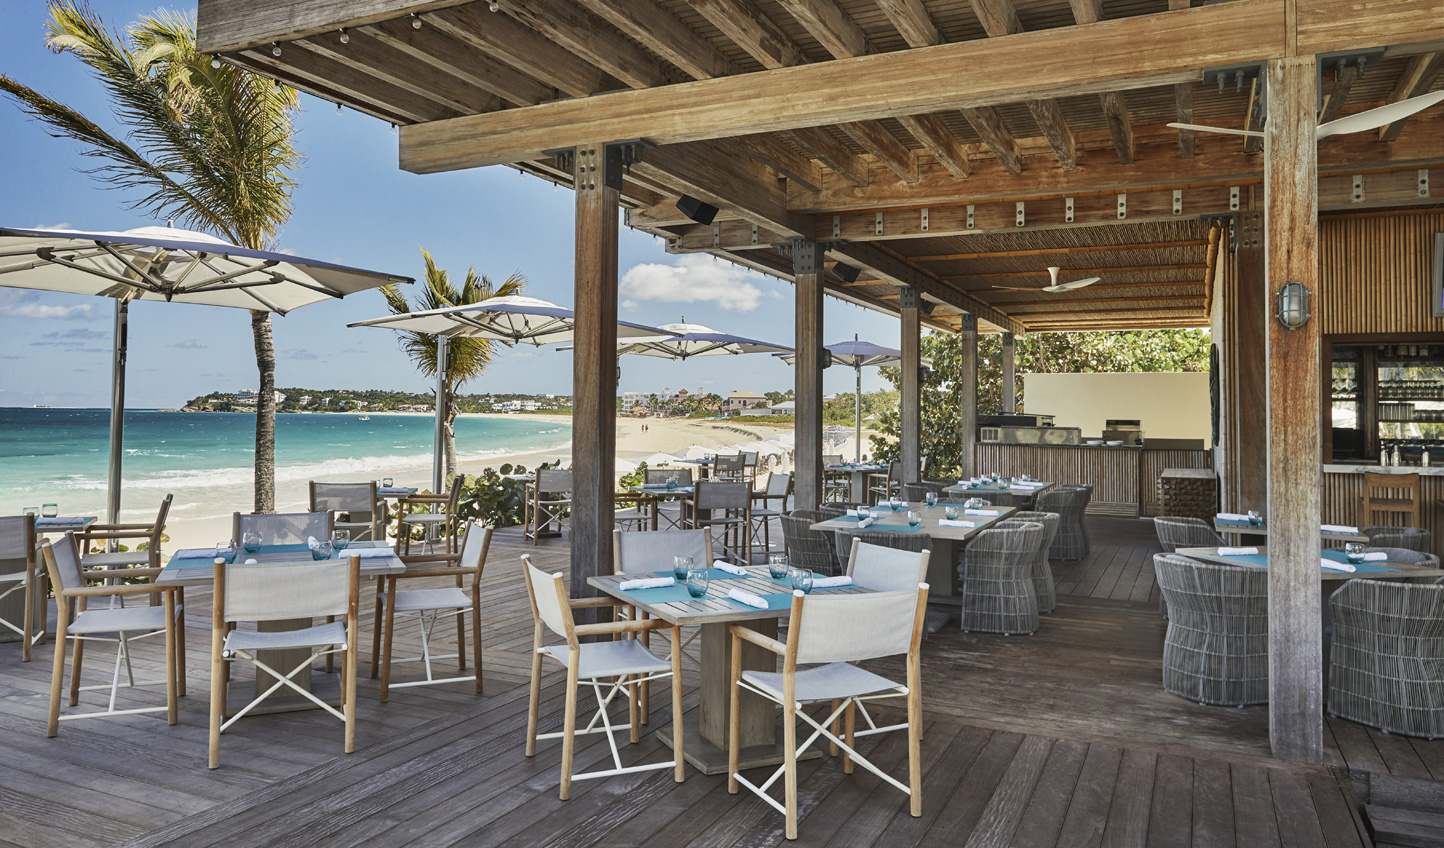 Dine al-fresco and enjoy the salty air and sea breeze